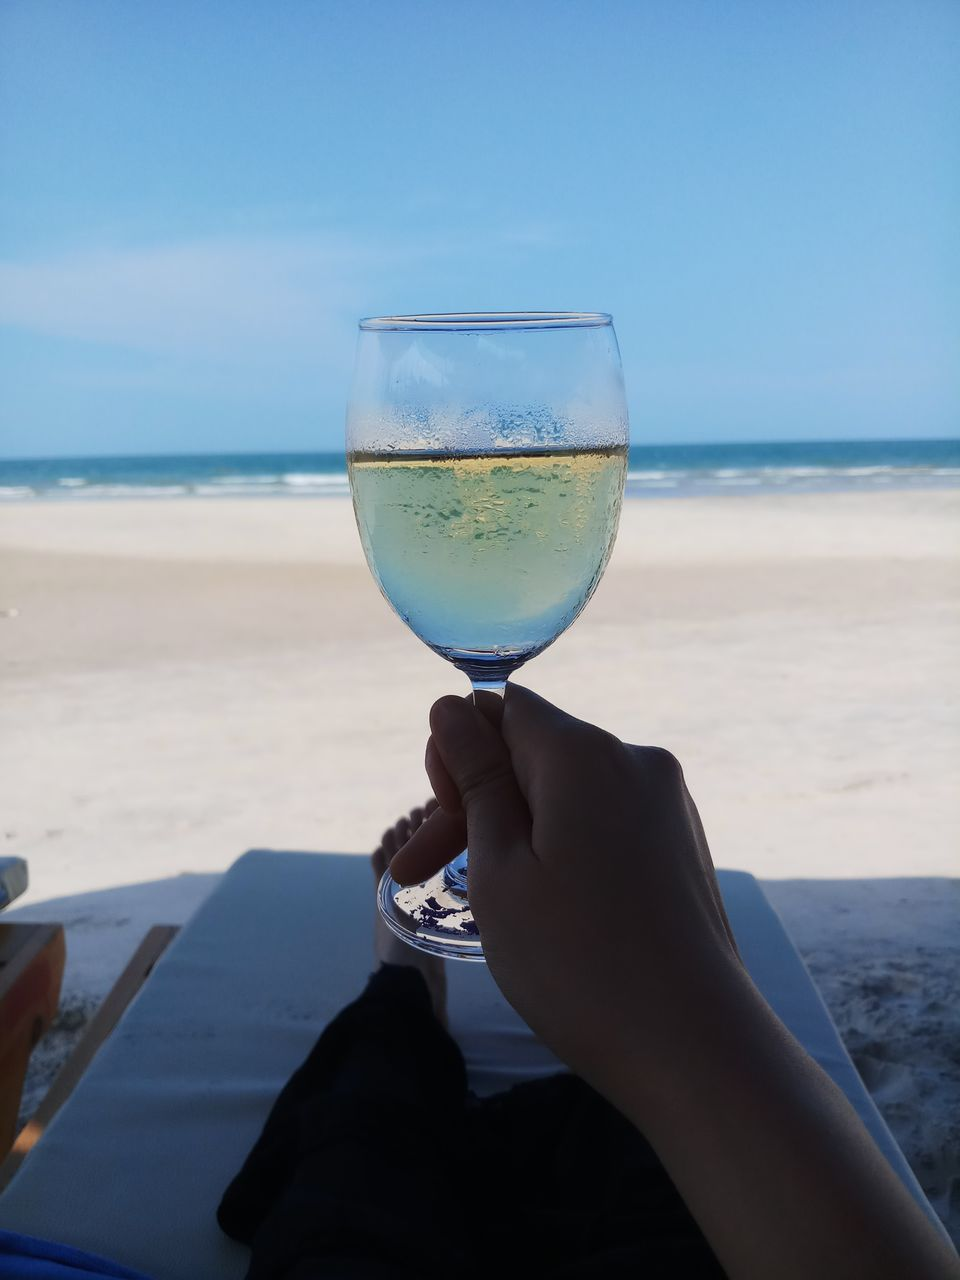 sea, beach, water, land, sky, human hand, one person, hand, nature, horizon over water, holding, glass, horizon, human body part, leisure activity, real people, lifestyles, scenics - nature, food and drink, outdoors